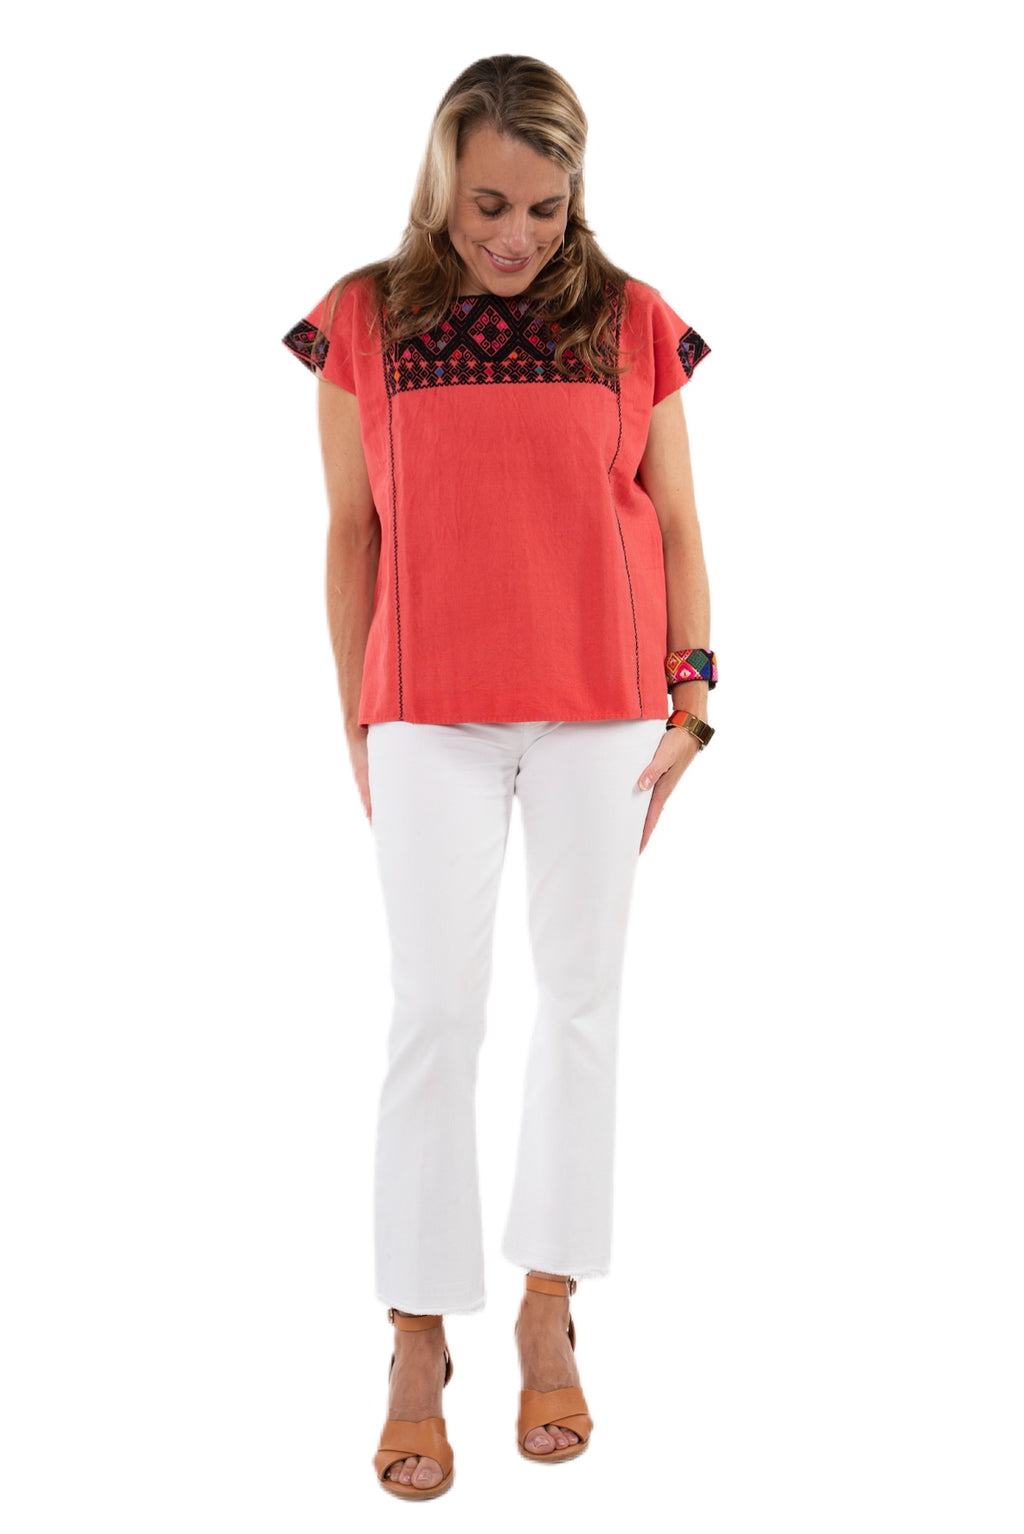 San Andres Mexican Blouse - Peach